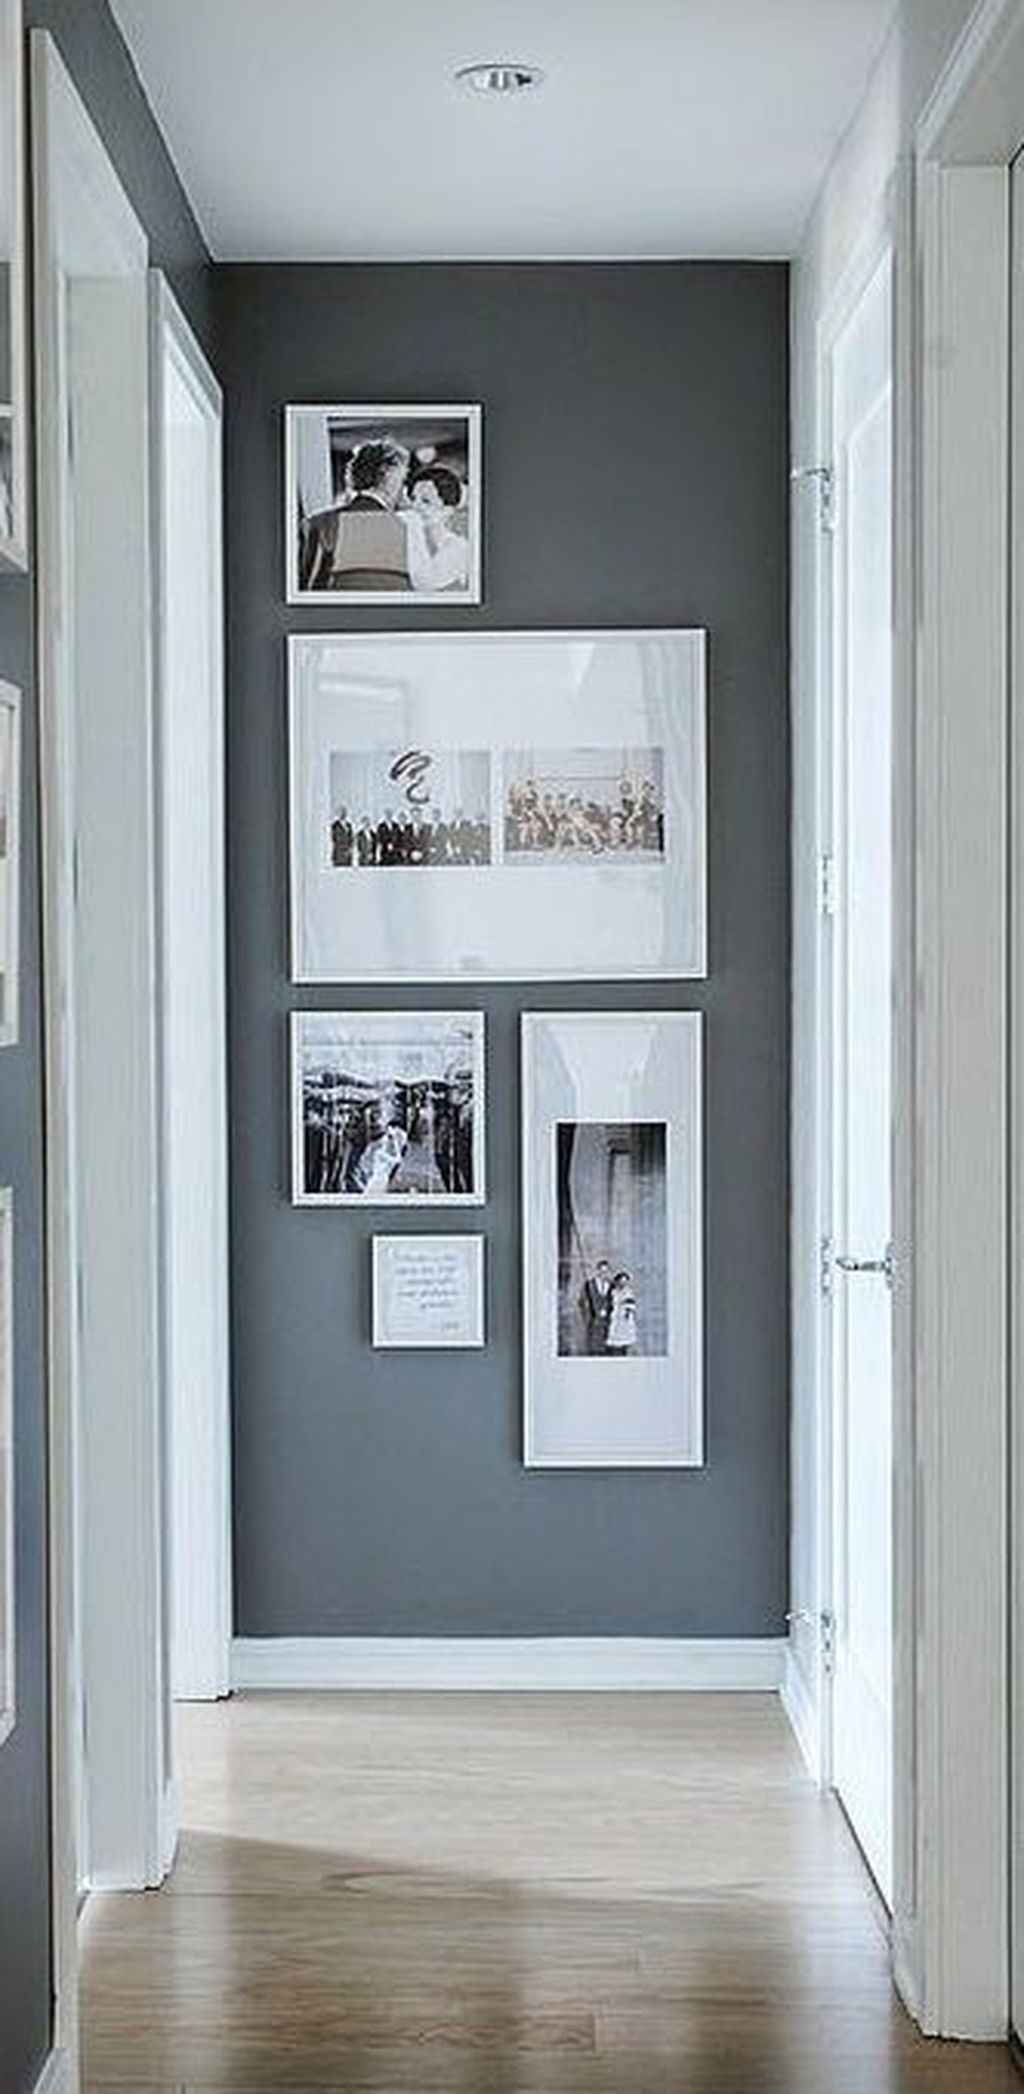 beautiful gallery wall decor ideas to show photos picture